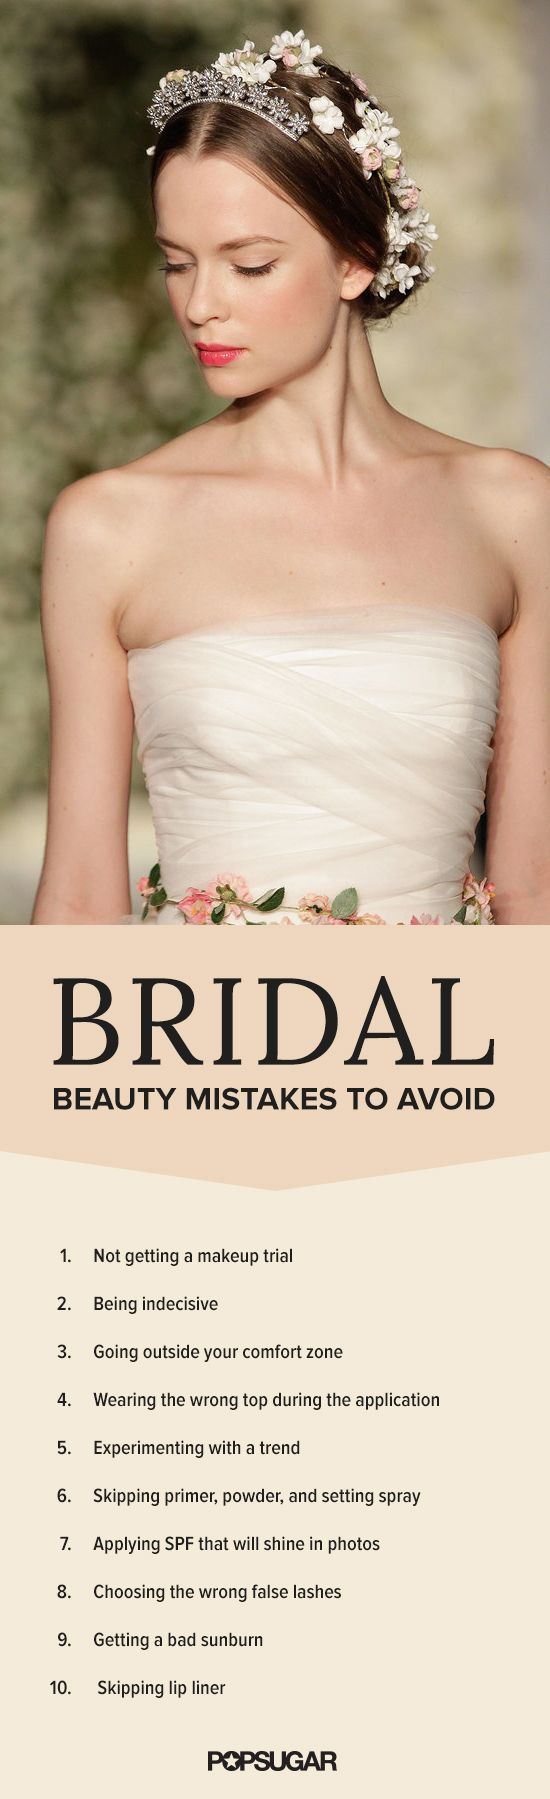 11 Bridal Beauty Mistakes to Avoid on Your Big Day ...